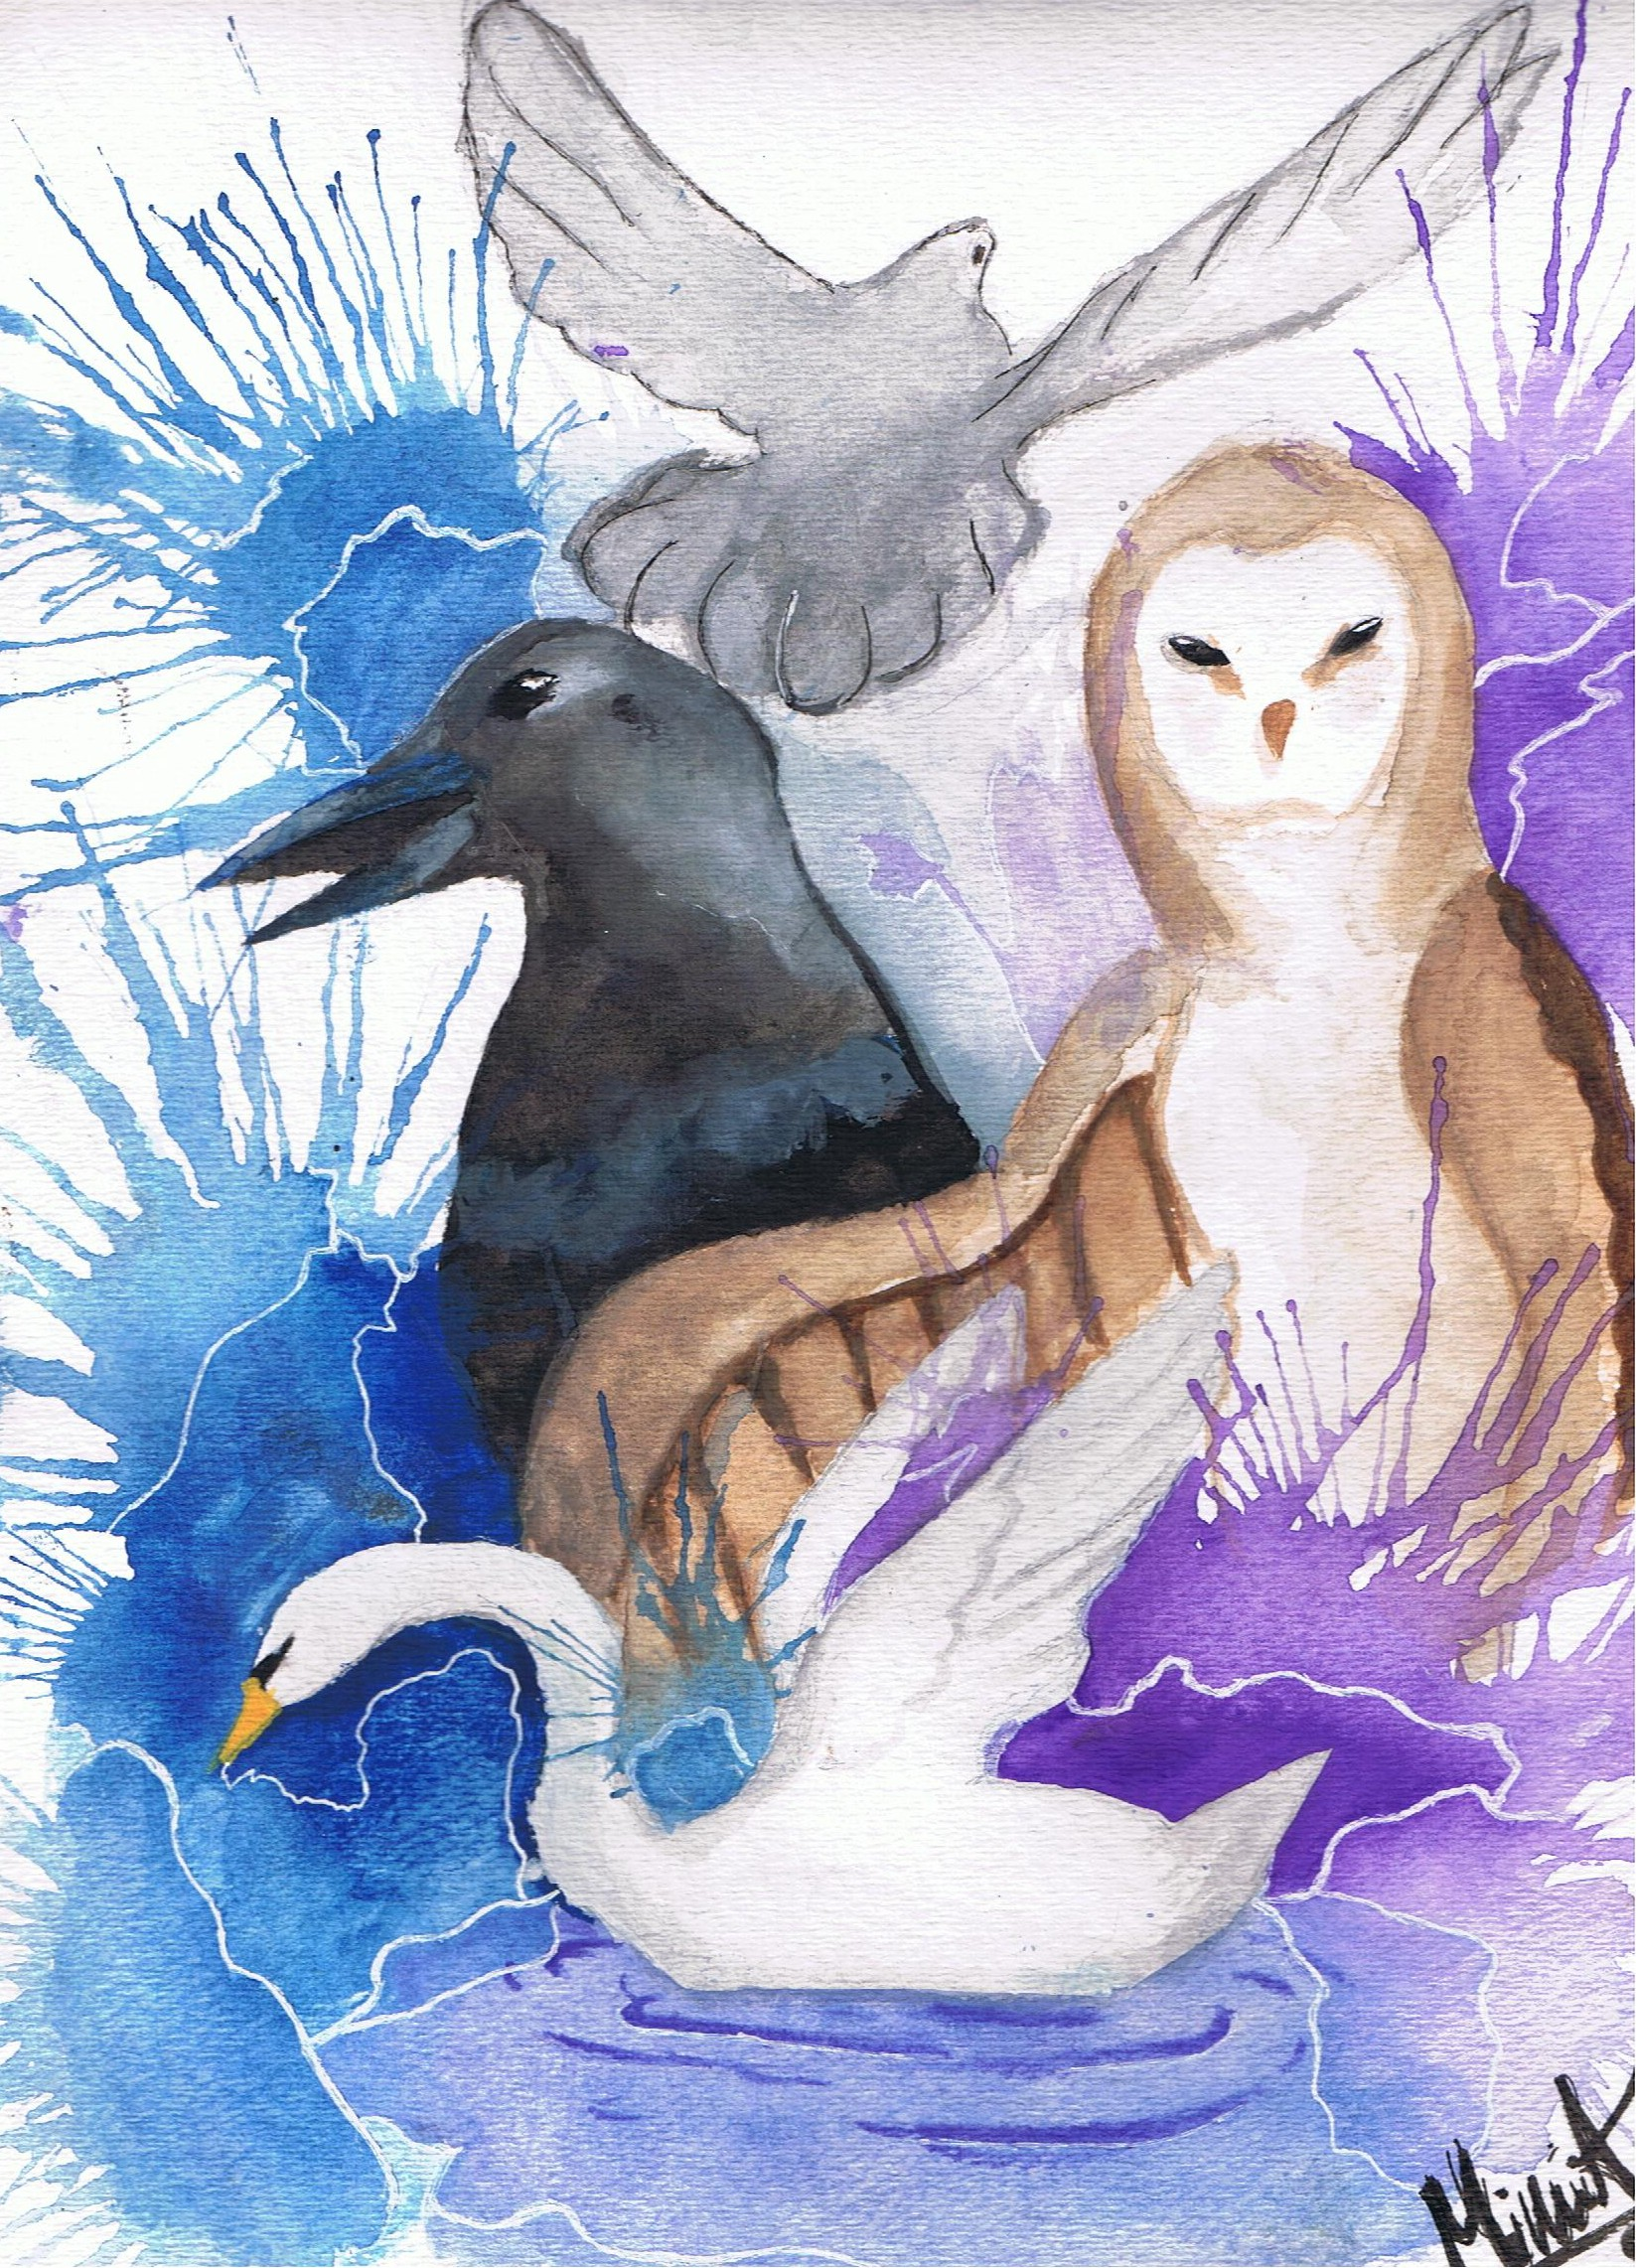 the dove and the crow The dove and the crow - kindle edition by joseph hirsch download it once and read it on your kindle device, pc, phones or tablets use features like bookmarks, note taking and highlighting while reading the dove and the crow.